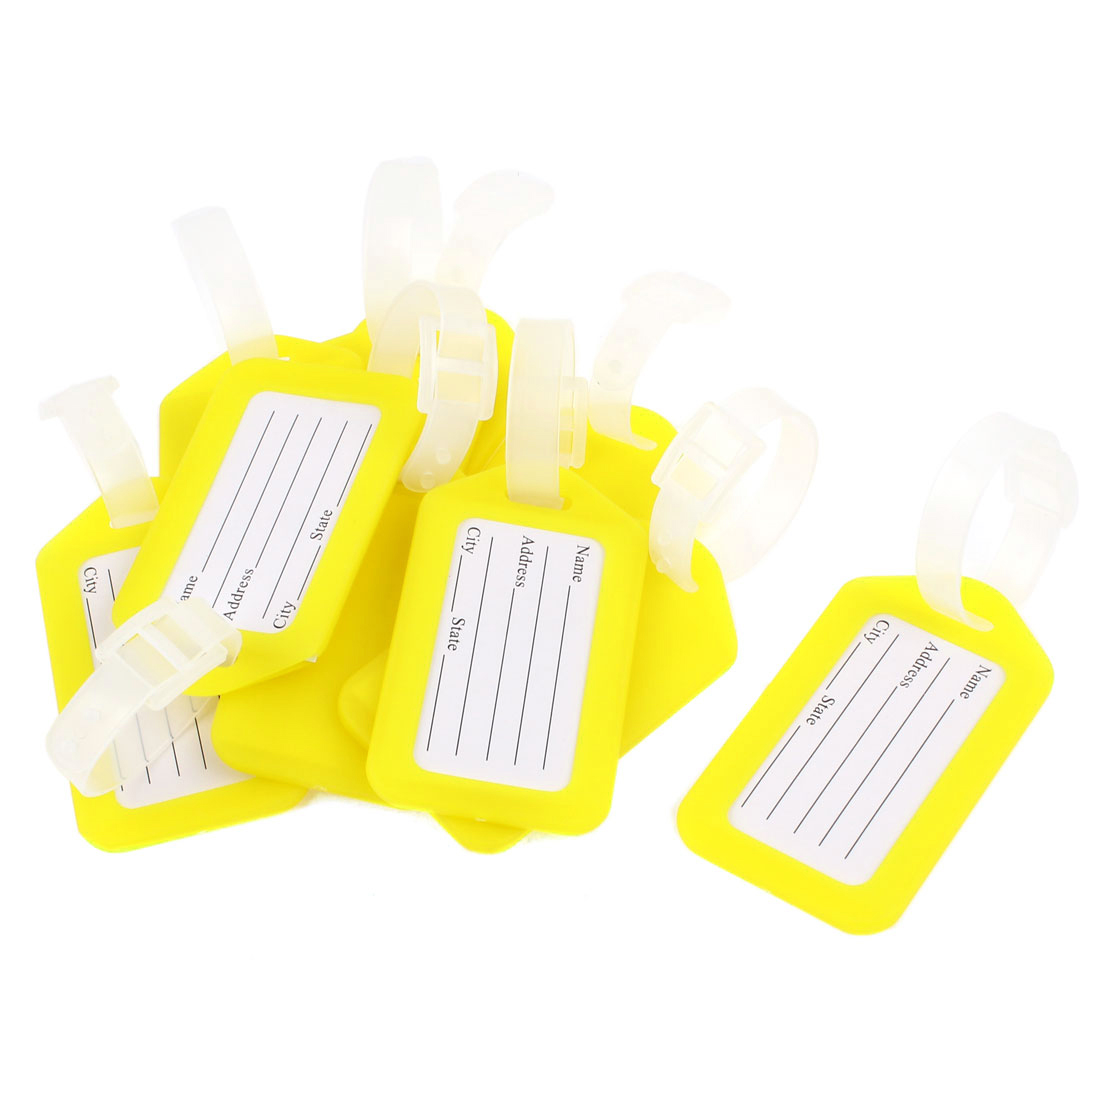 10 Pcs Yellow White Plastic Suitcase Bag Name Label Travel Luggage Holder Tags